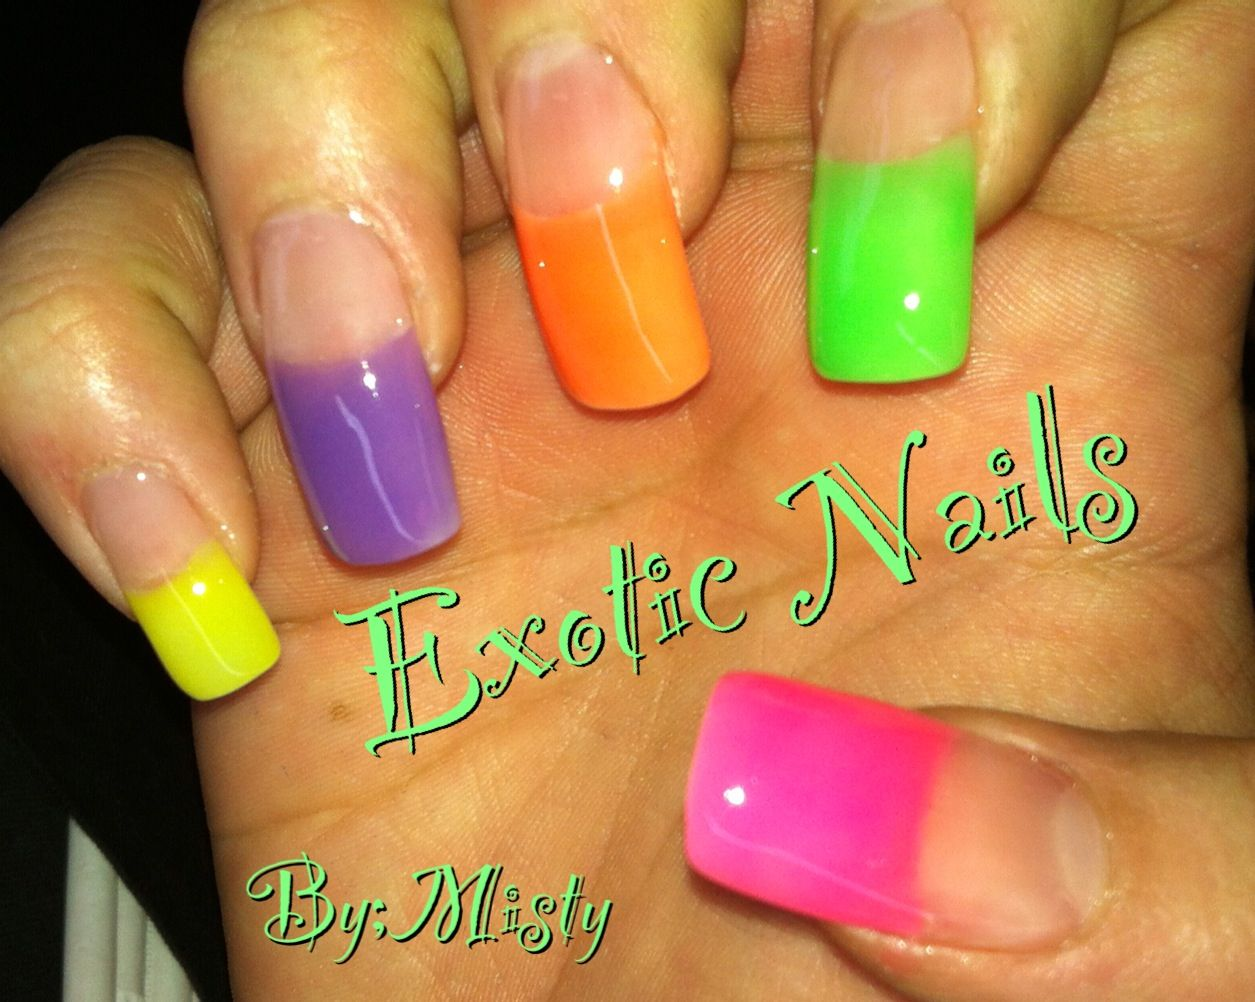 Pin by audrey hawes on Nails | Pinterest | Exotic nails, Painted ...